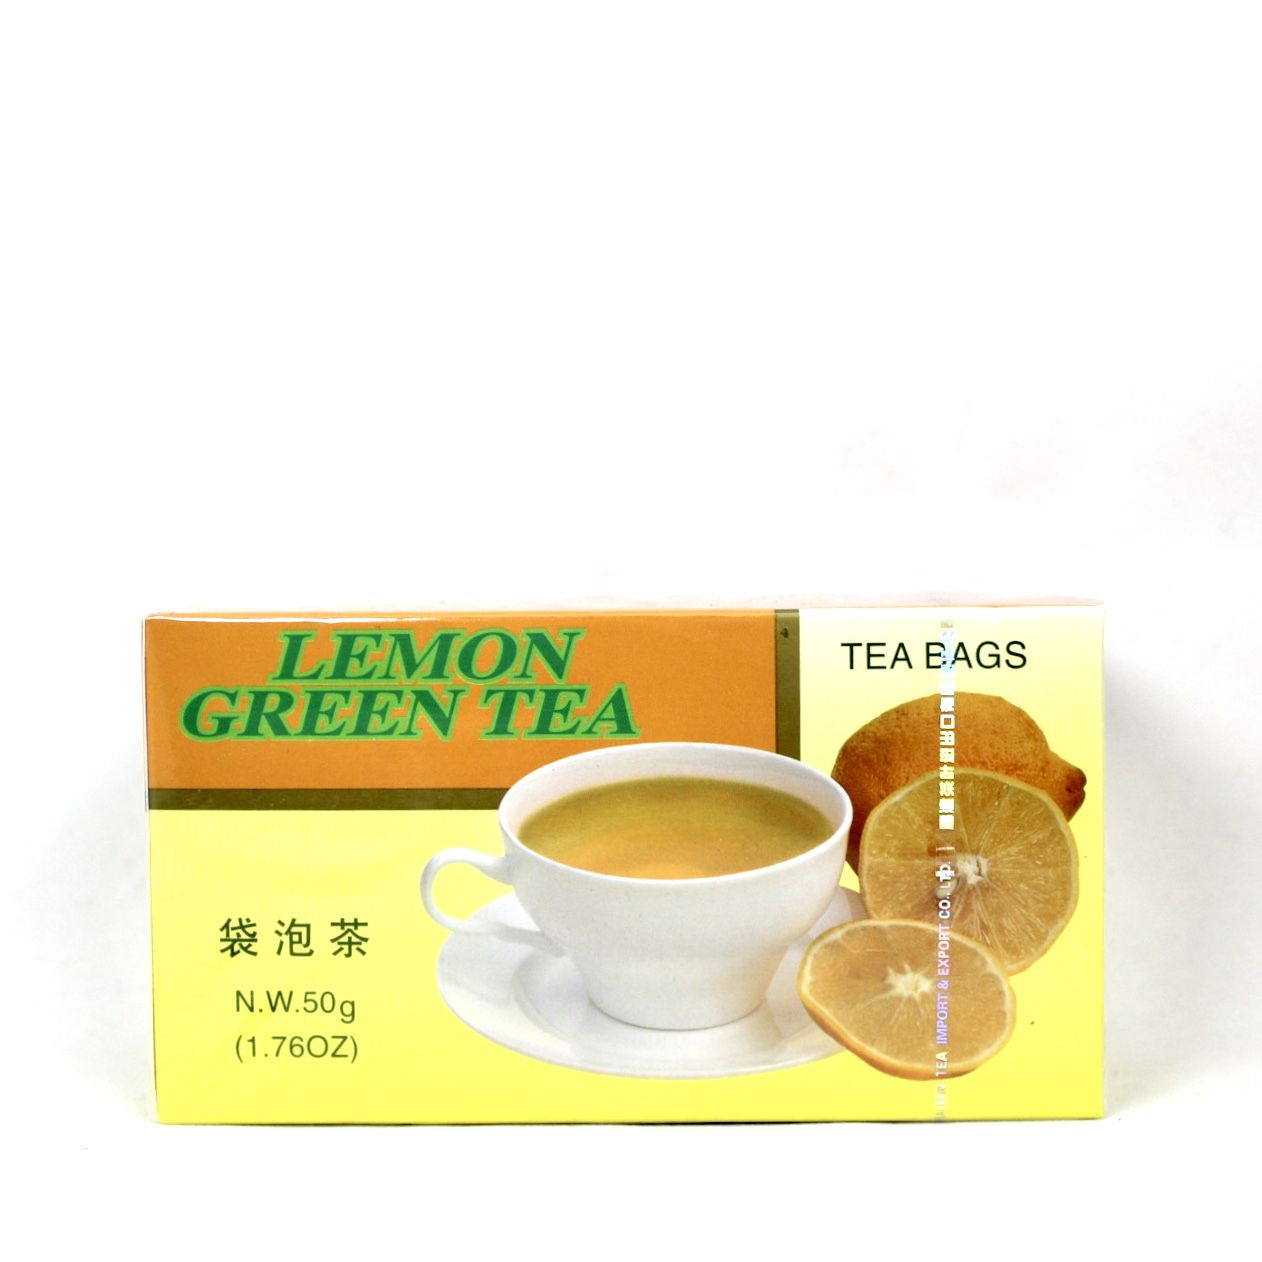 FUJIAN GREEN TEA & LEMON 2g X 25 BAGS GT901